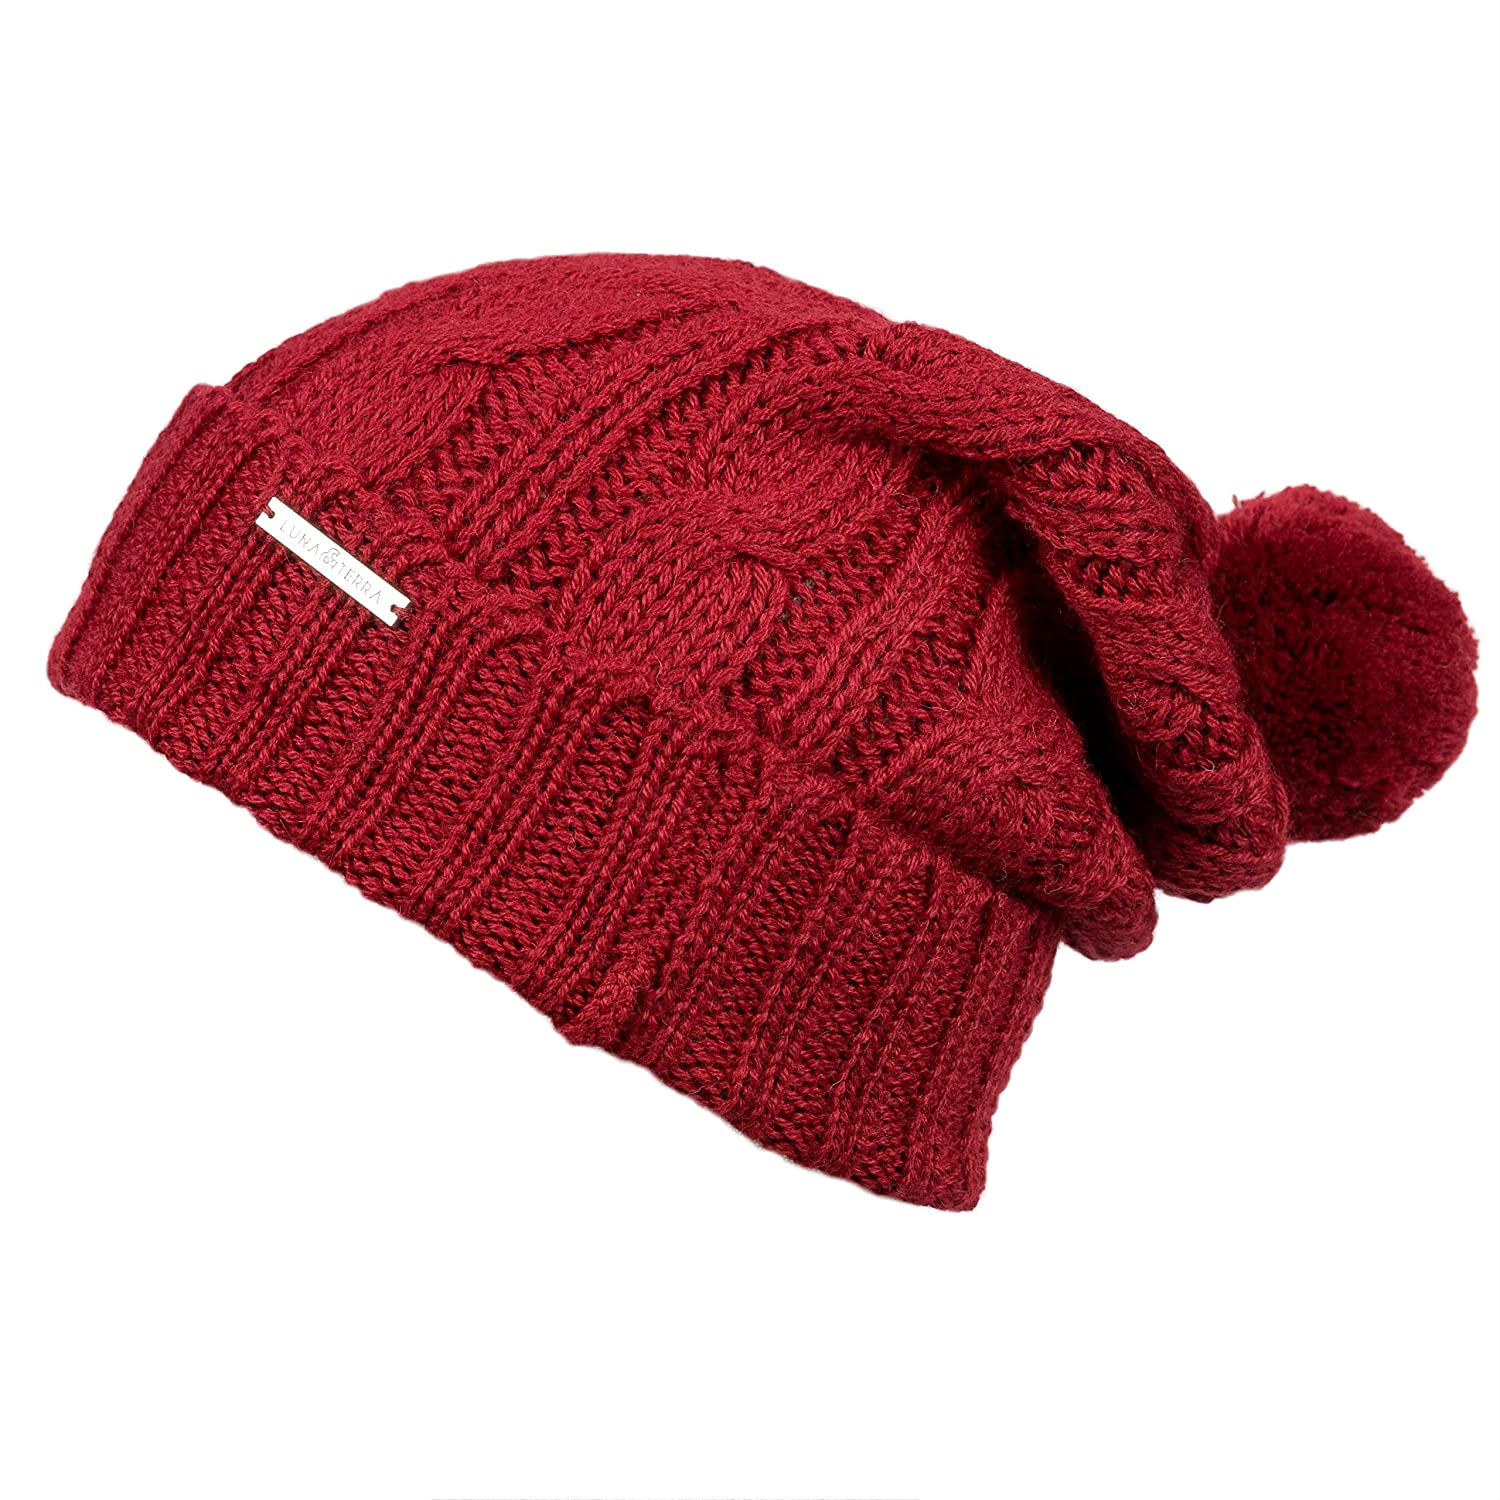 LUNA & TERRA  MESSINA Hat Beanie Hand Knitted 100% BABY ALPACA (Imperial Red)